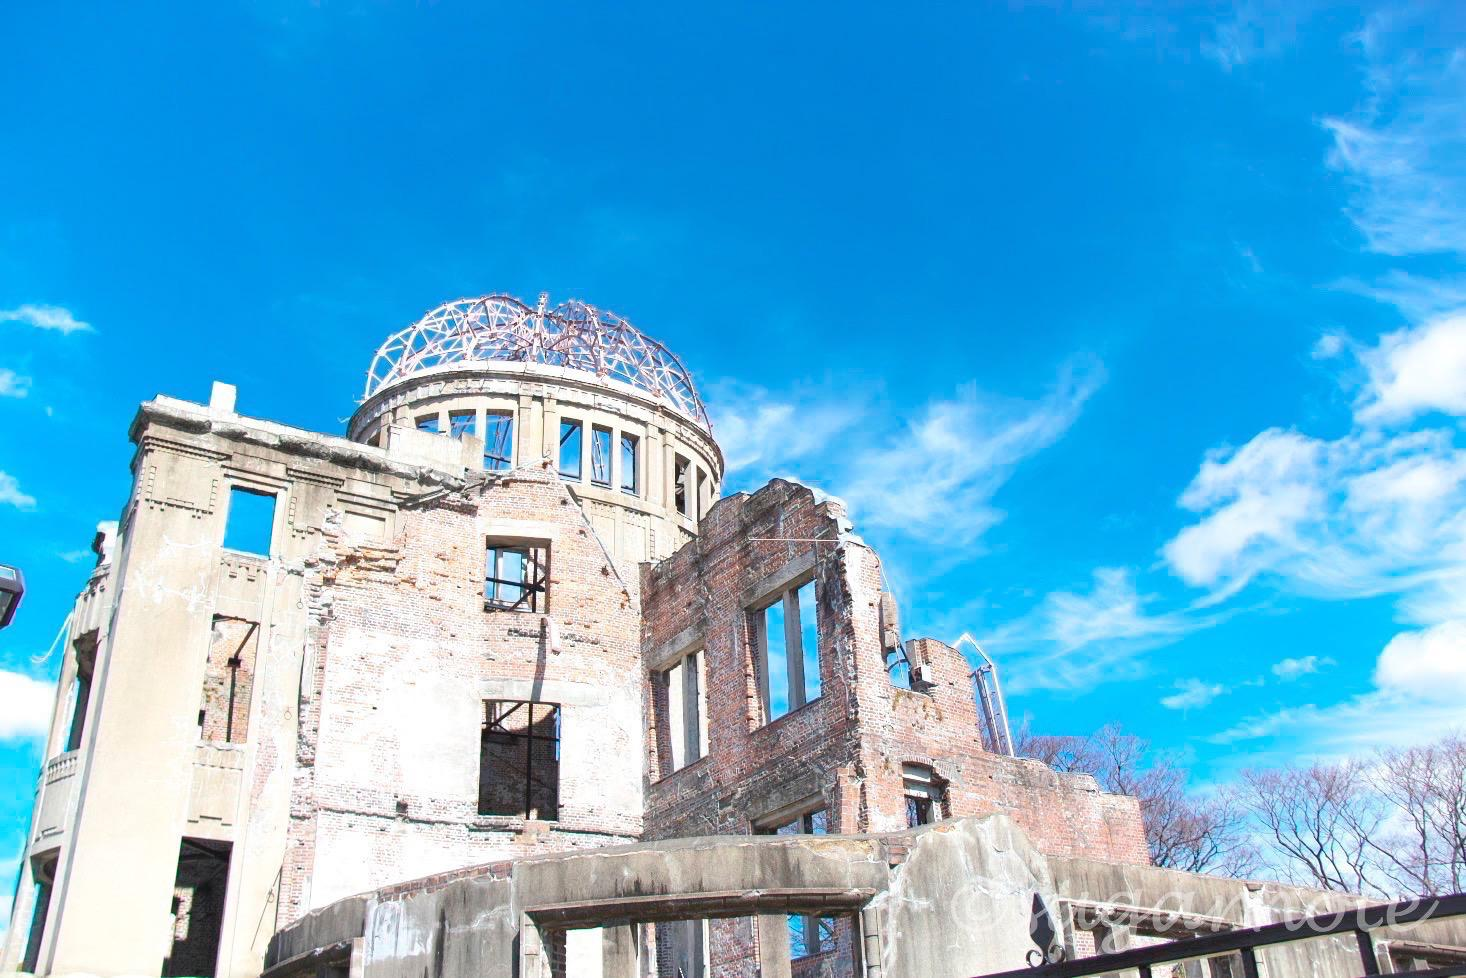 広島原爆ドーム, The Atomic Bomb Dome